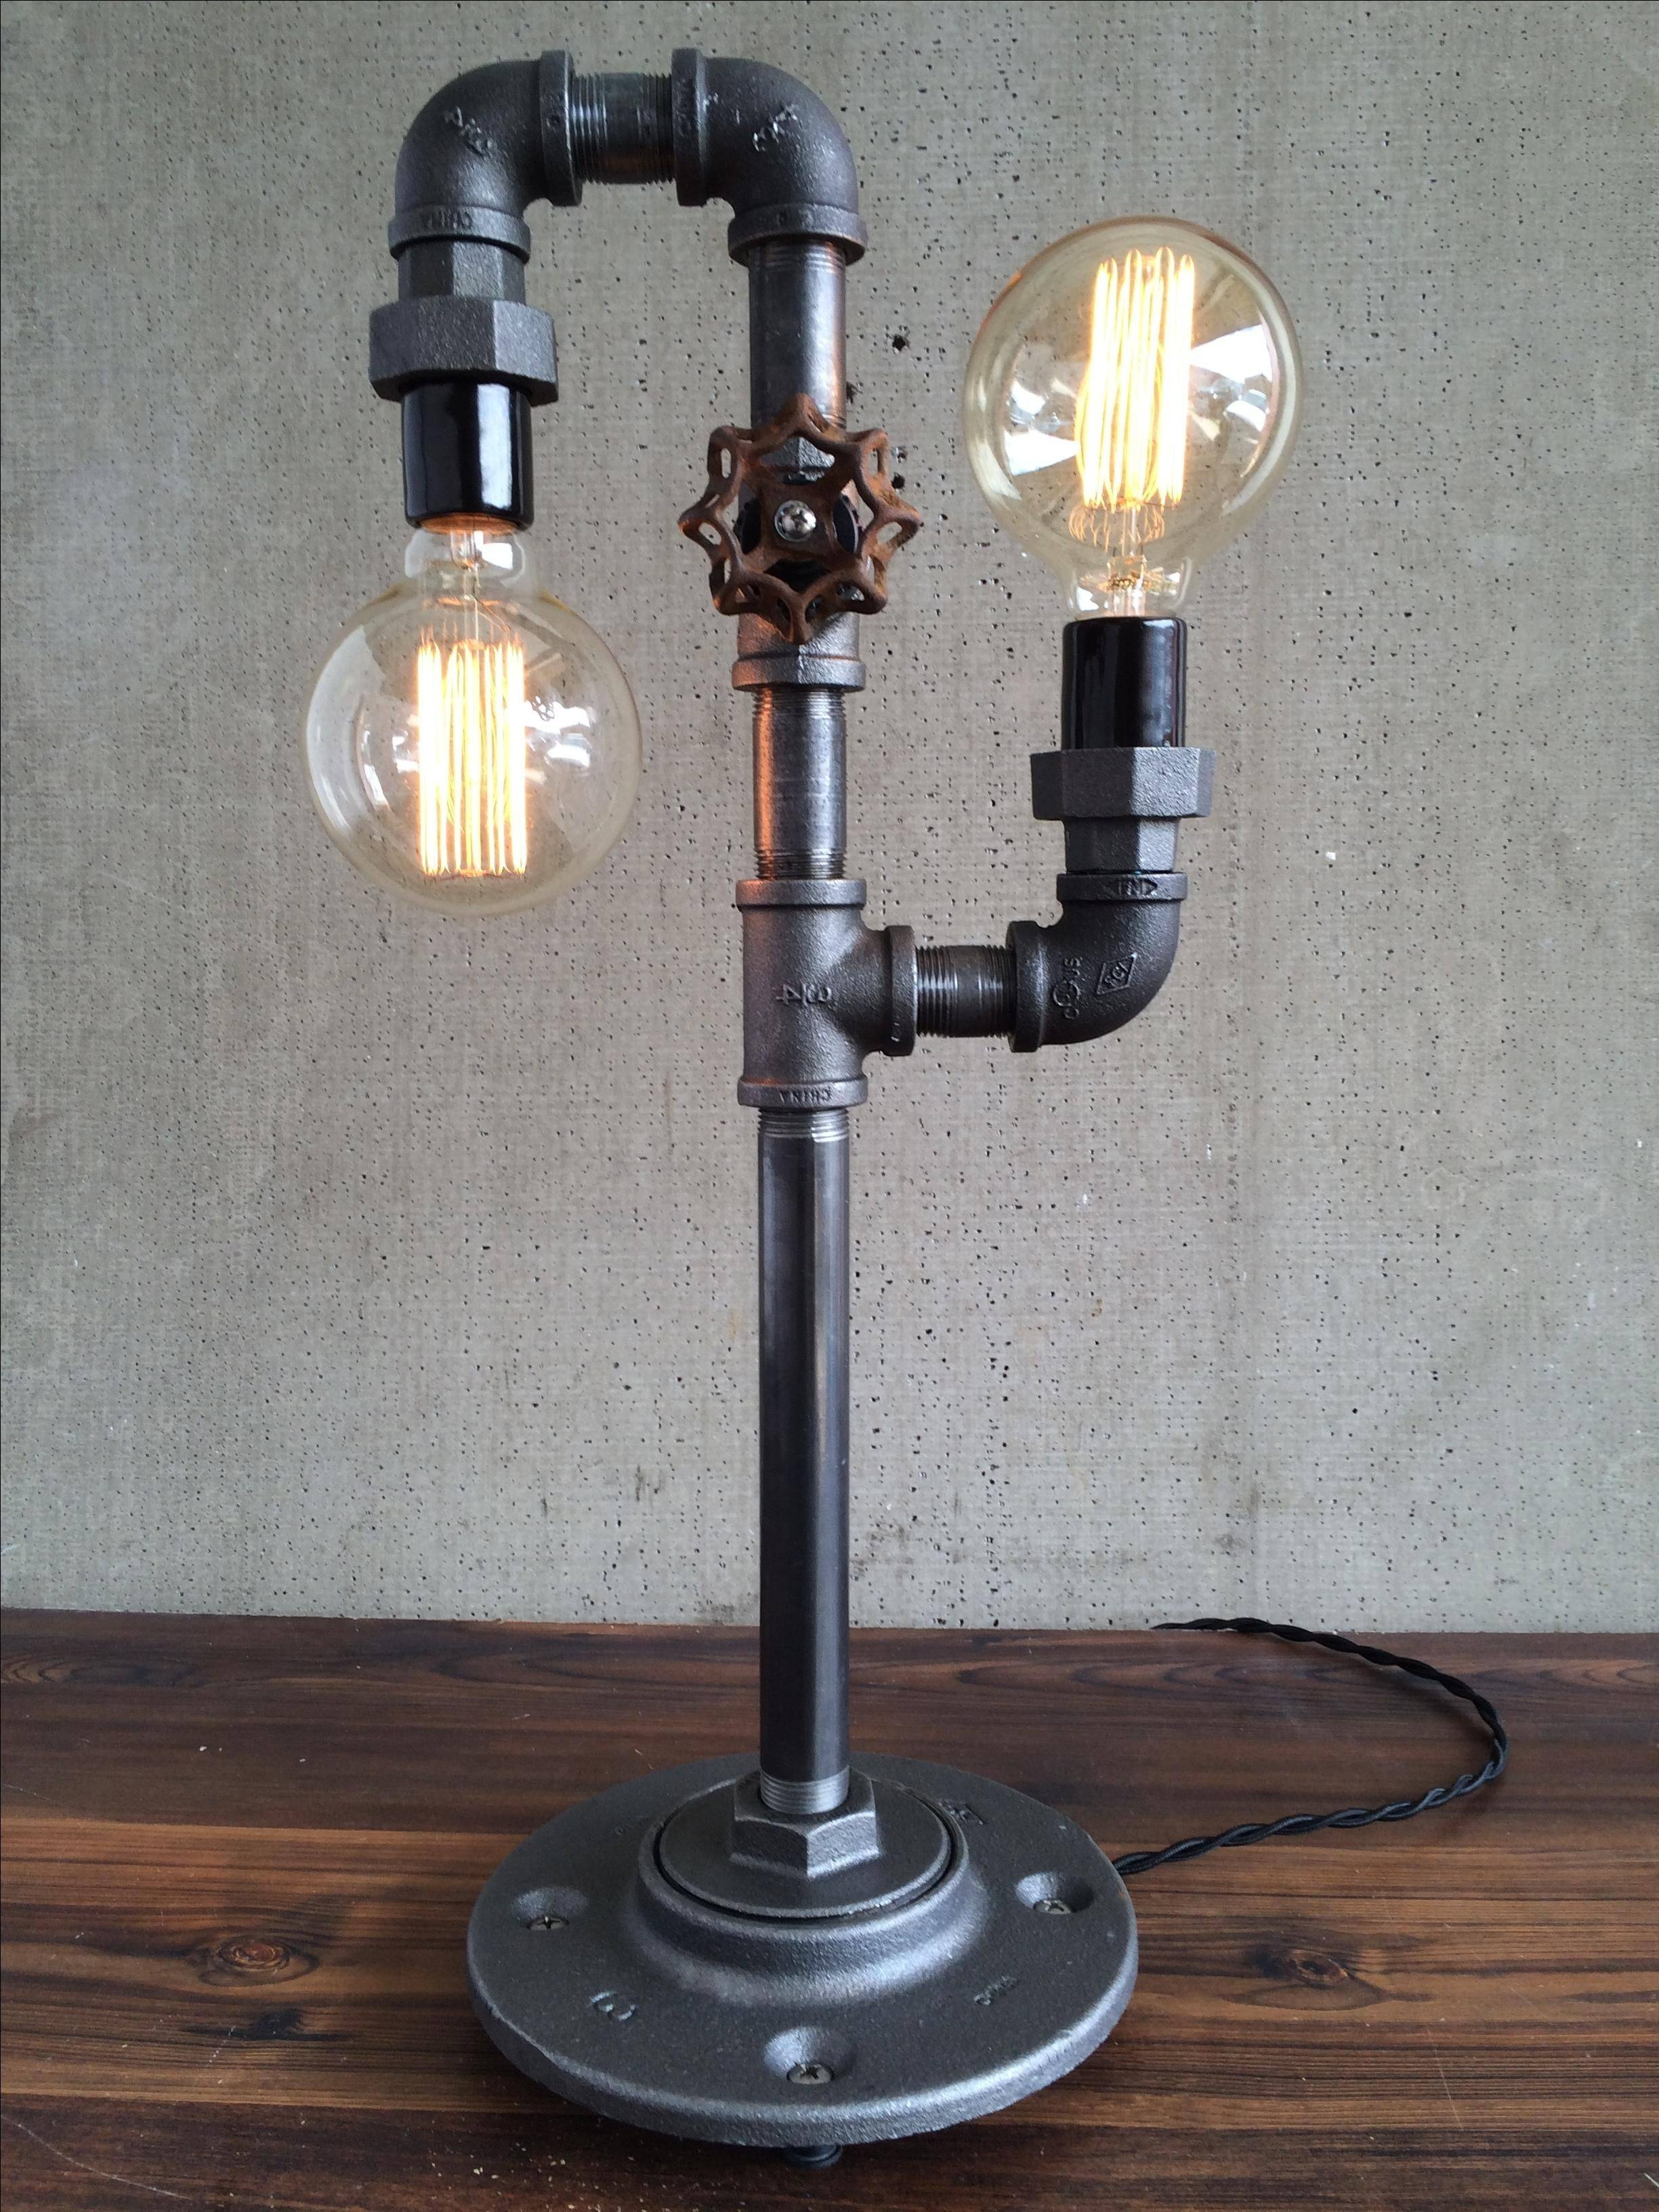 Edison Bulb Lamps | Pendant Lights, Sconces, Chandeliers in Bare Bulb Pendant Lighting (Image 8 of 15)